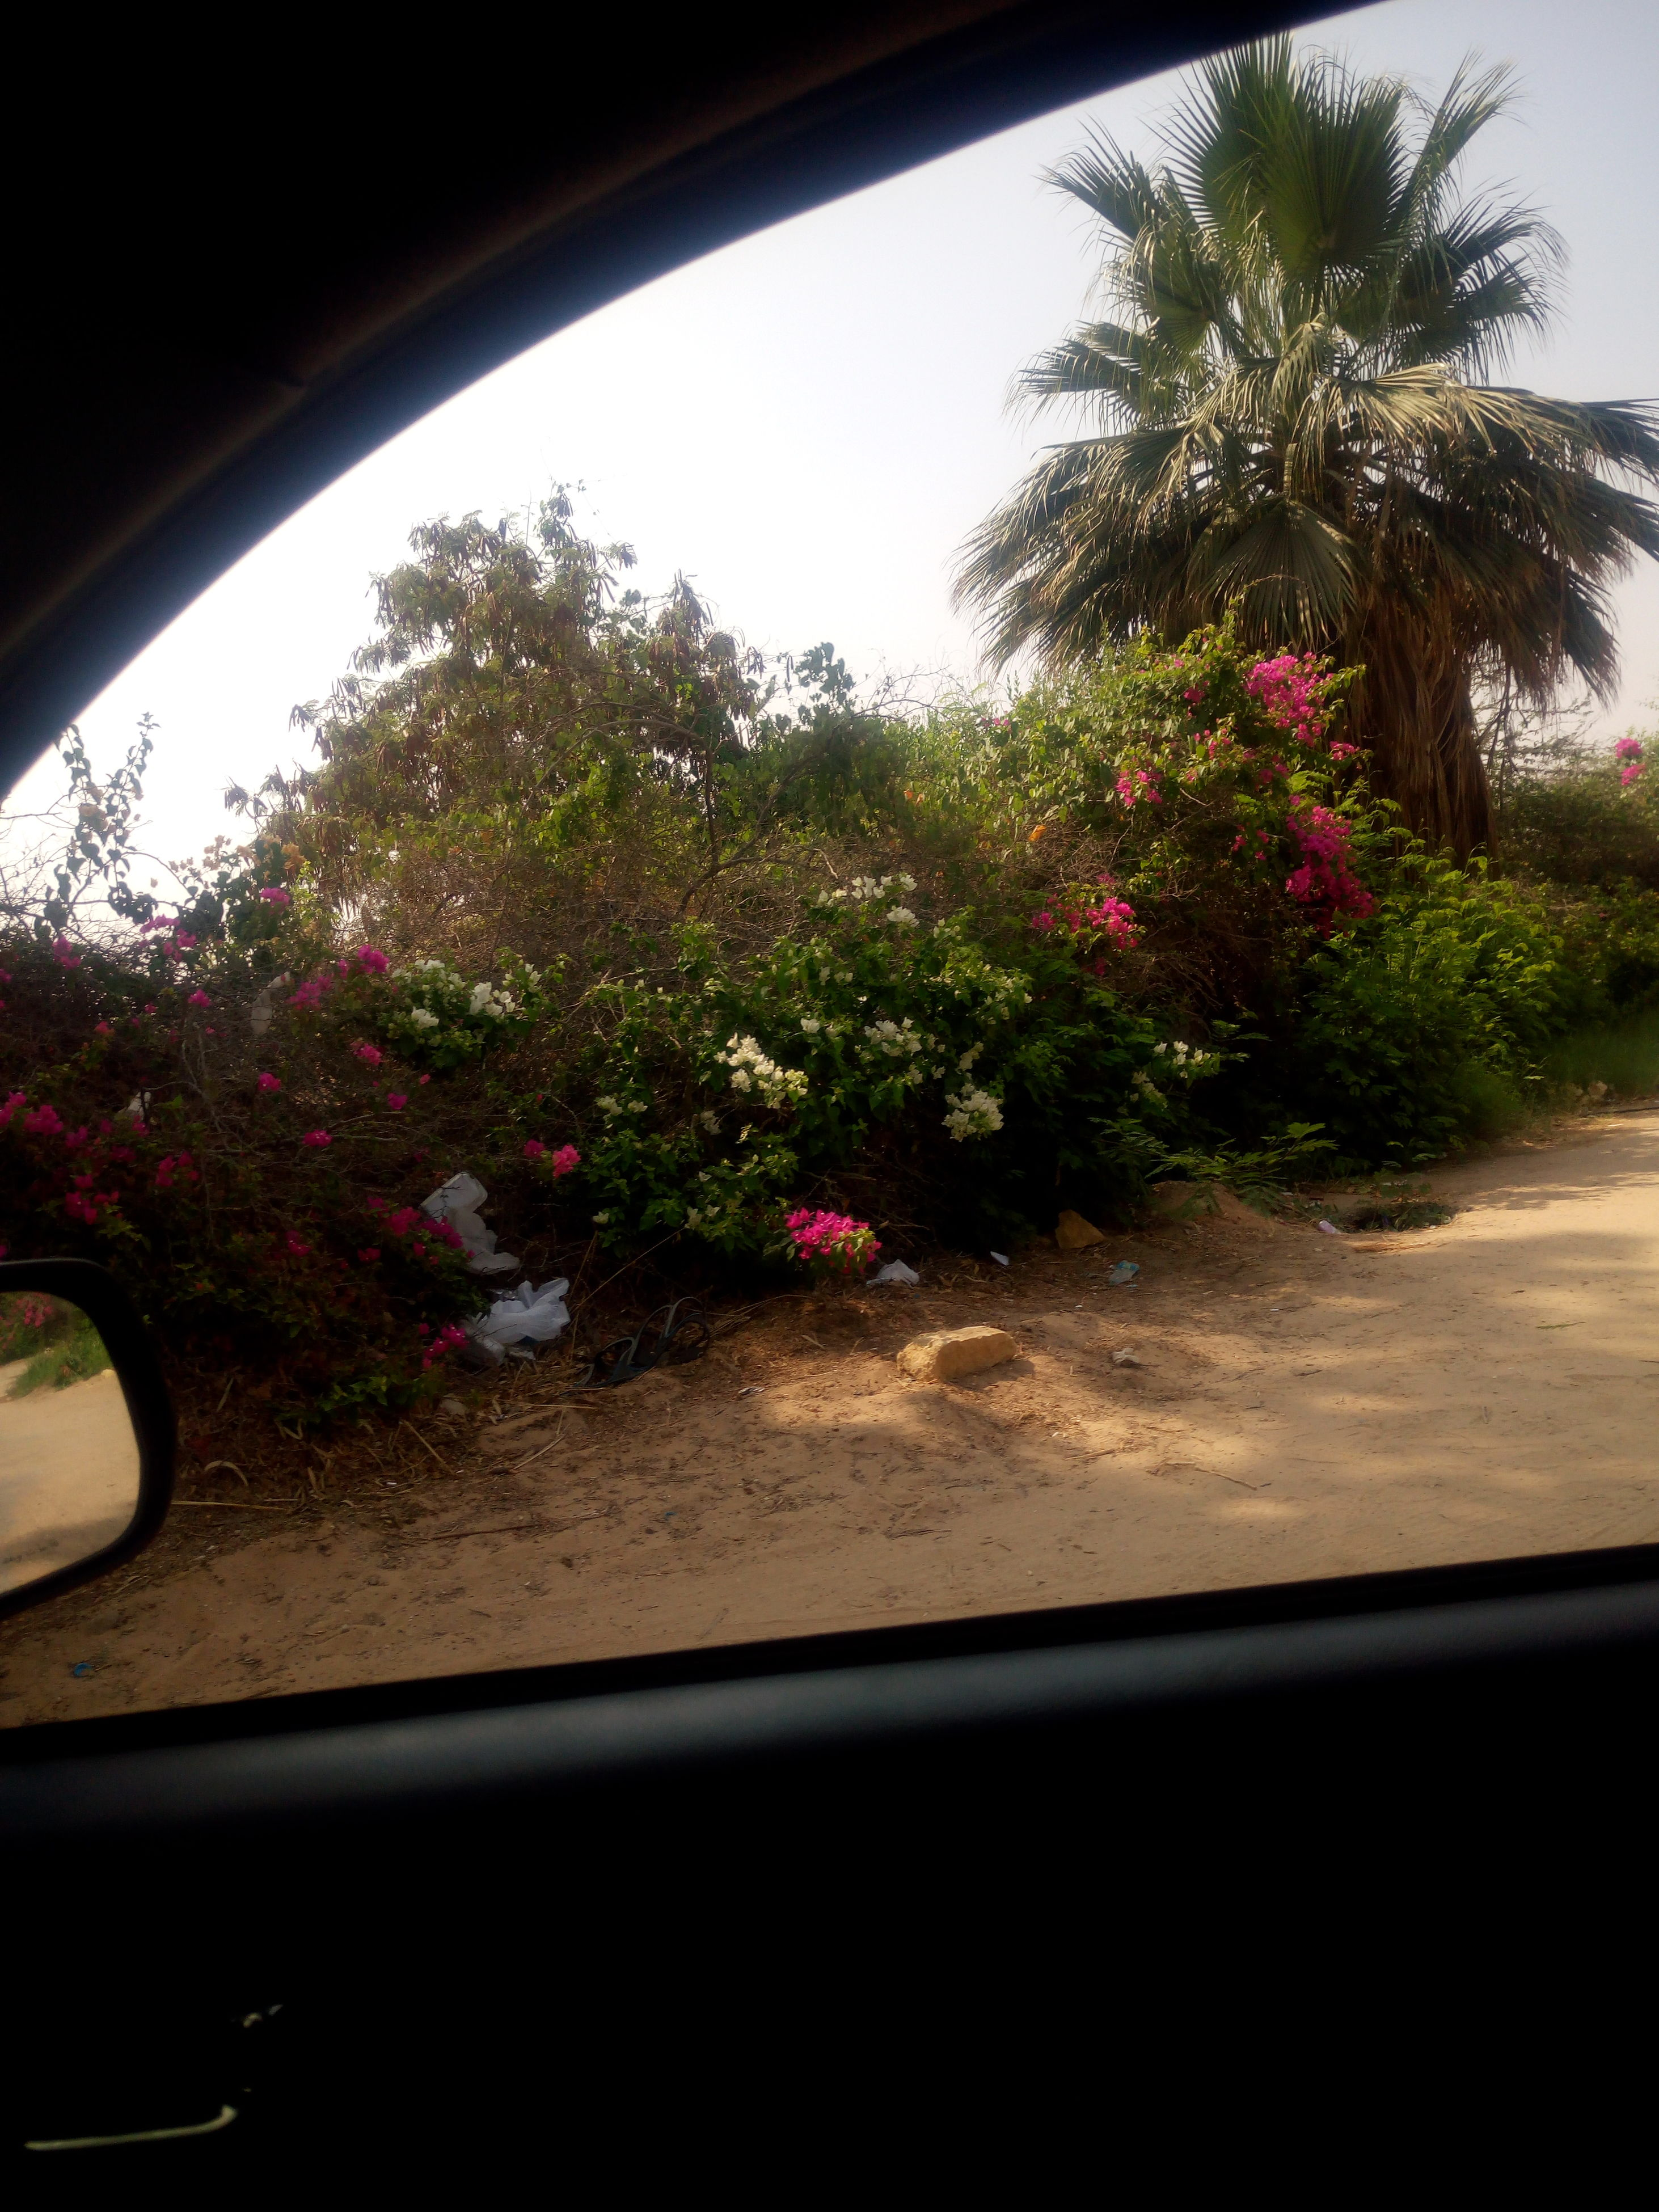 car, transportation, car interior, tree, growth, no people, palm tree, day, nature, flower, indoors, sky